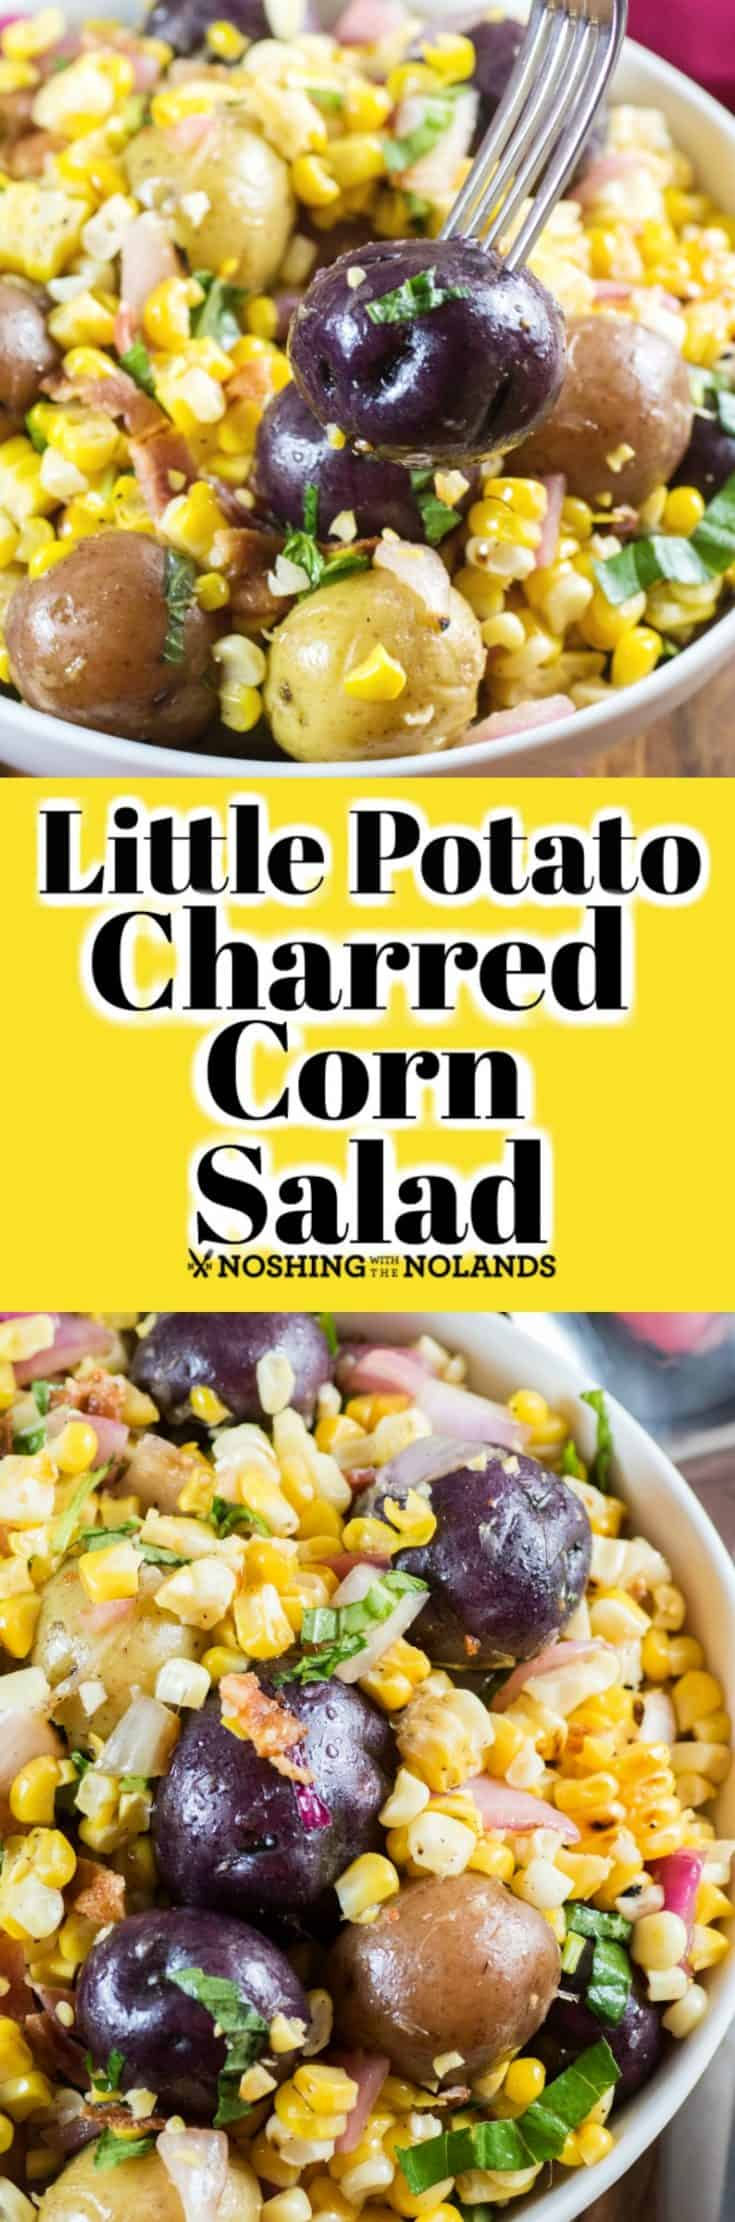 This Little Potato Charred Corn Salad is easy to make, delicious to eat and will give you an new side to enjoy all summer long. #littlepotatoes #Creamerpotatoes #salad #corn #bacon